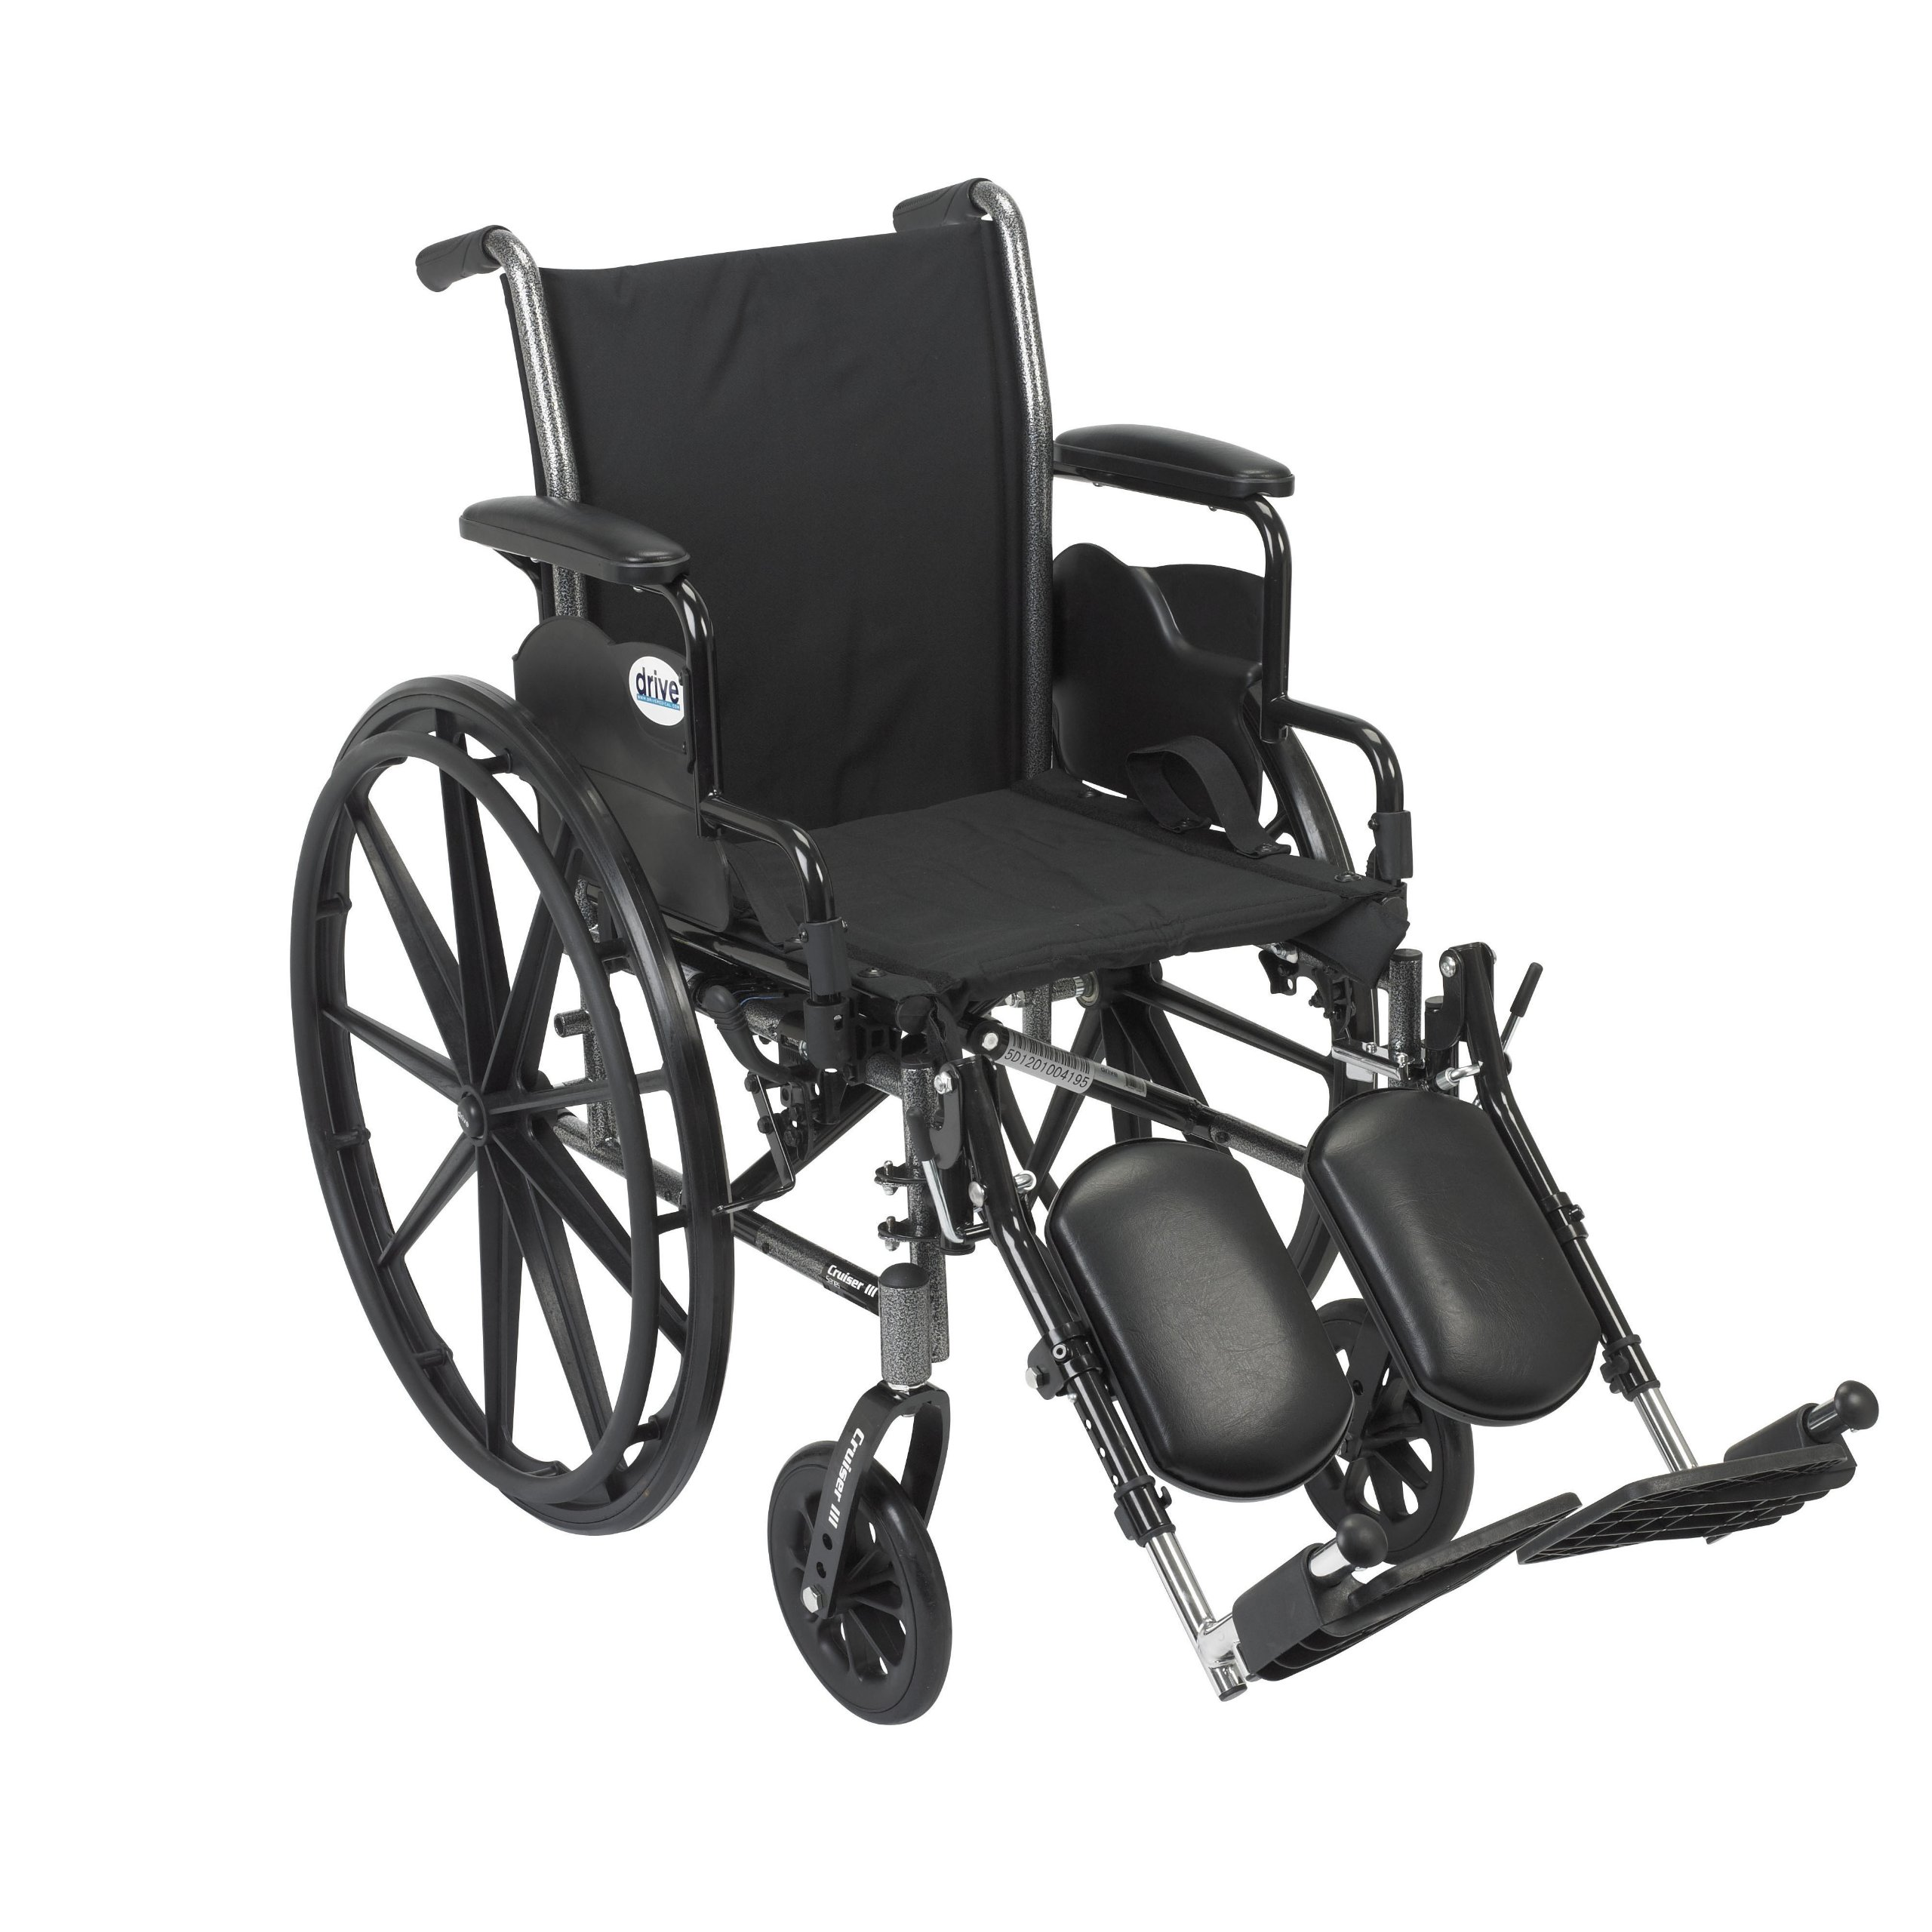 Drive Medical Cruiser III Light Weight Wheelchair with Various Flip Back Arm Styles and Front Rigging Options, Black, 20''